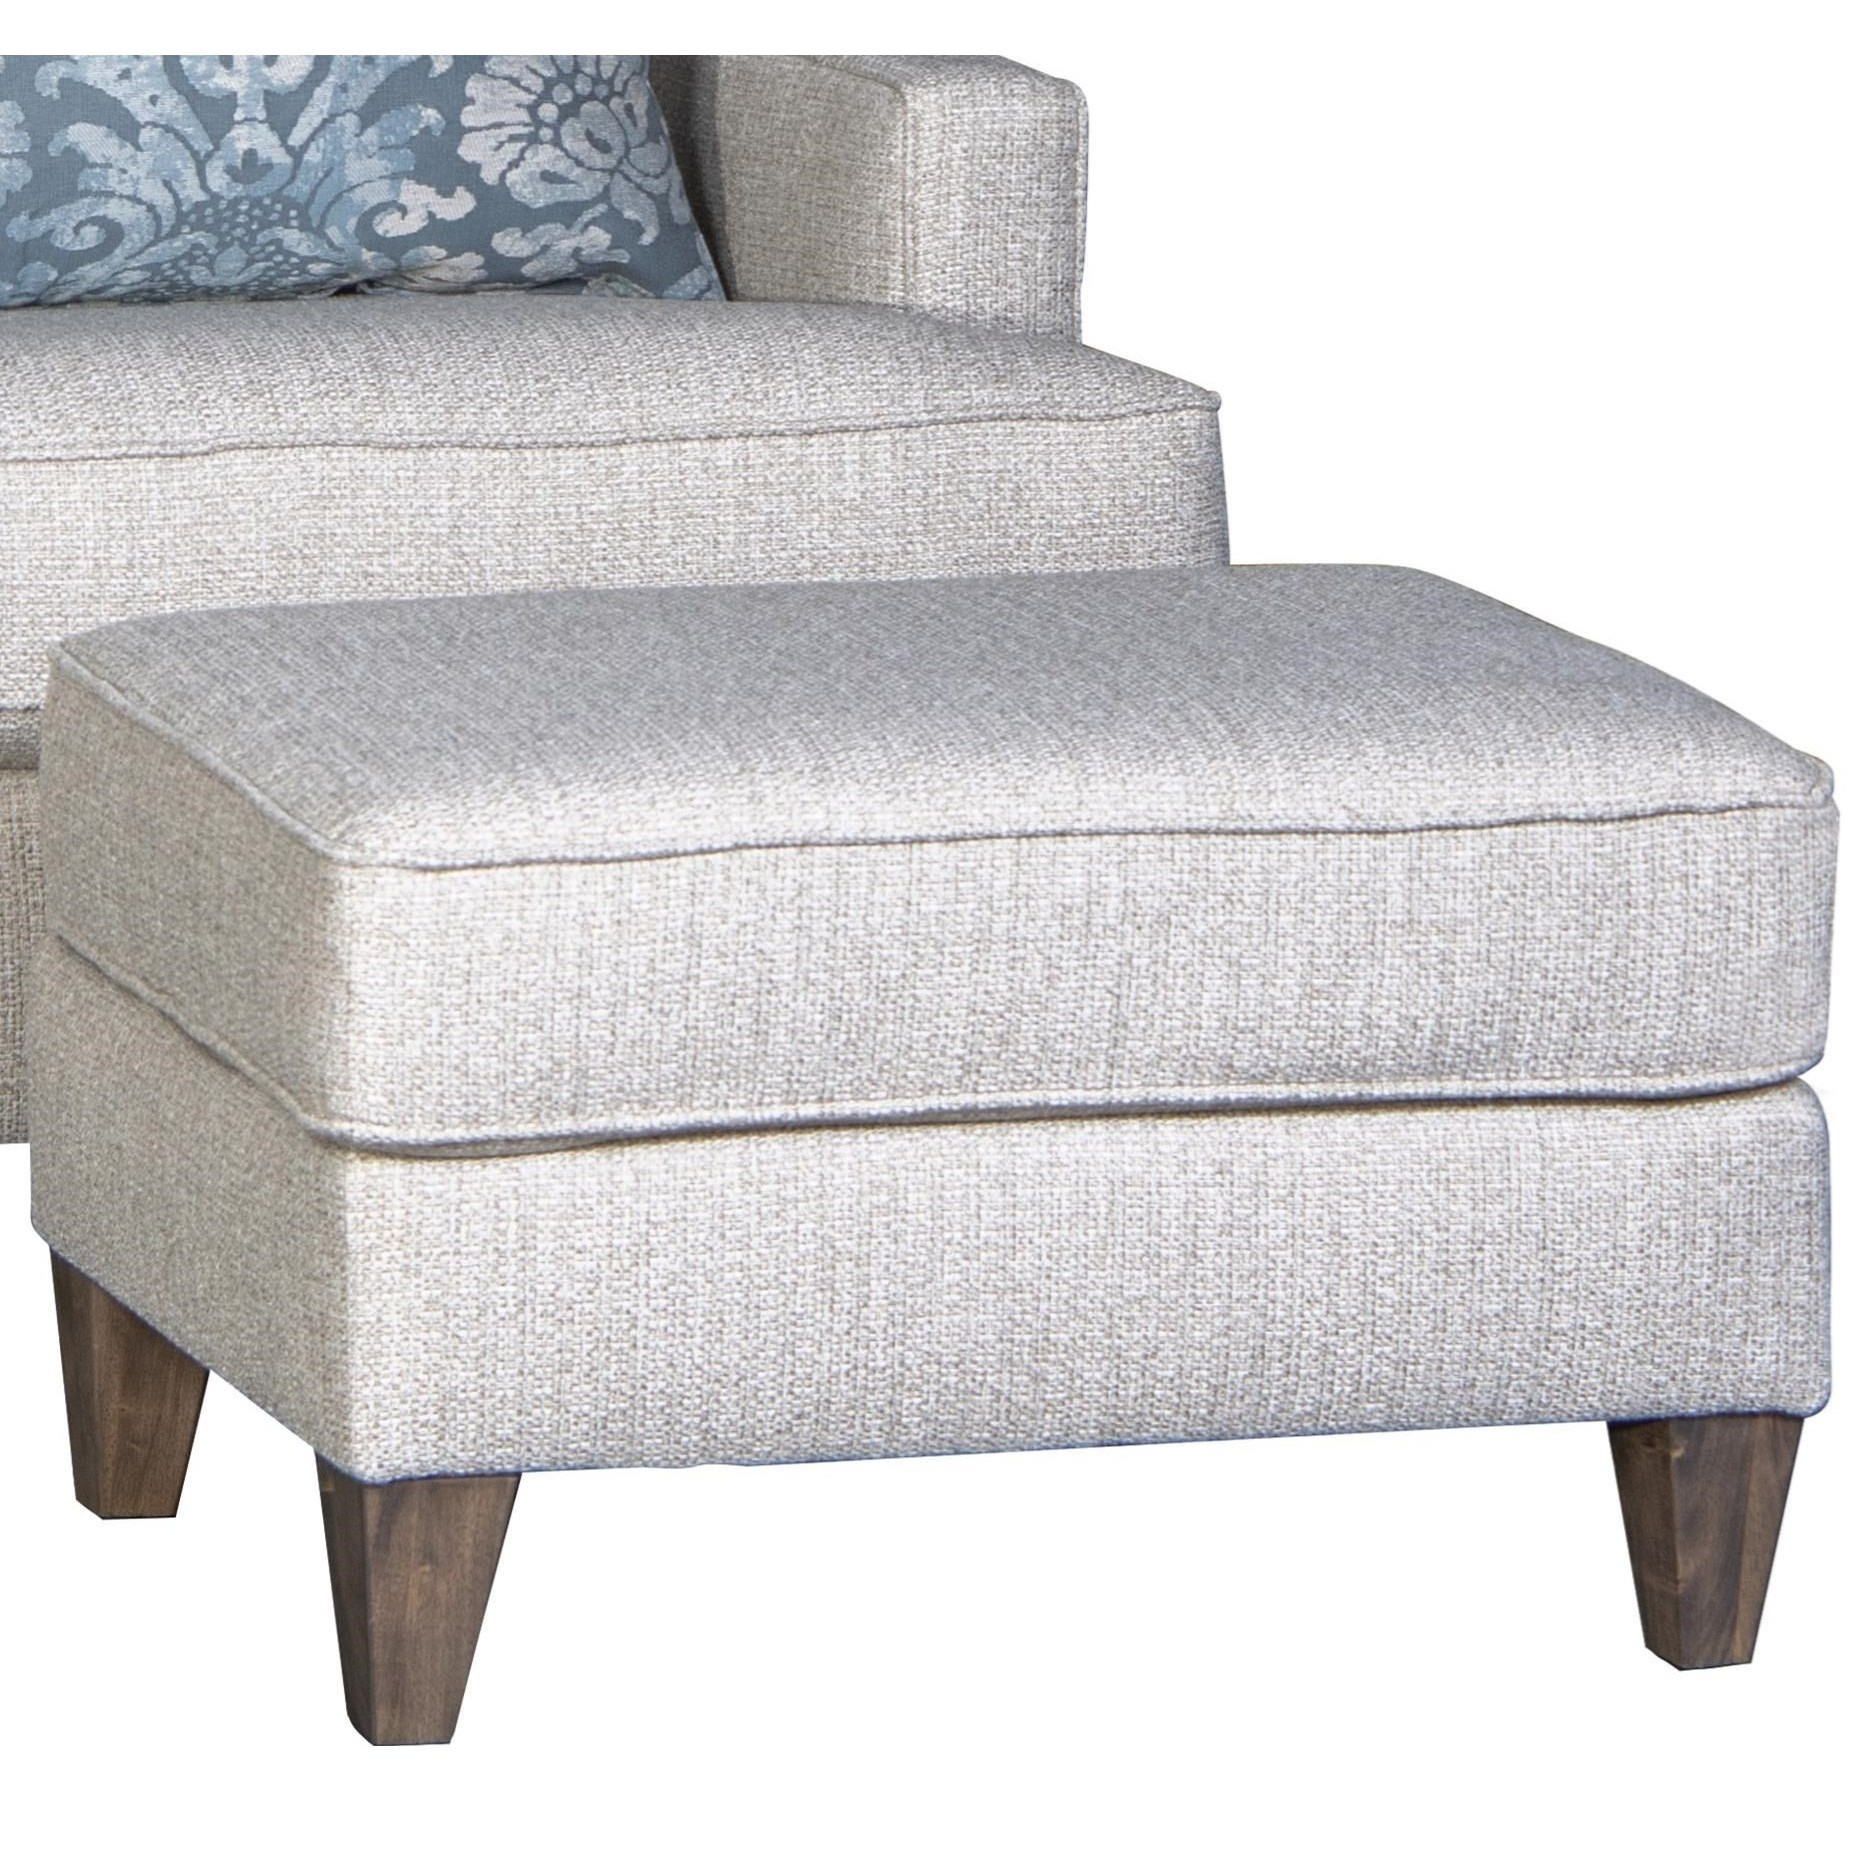 3030 Ottoman by Mayo at Wilson's Furniture